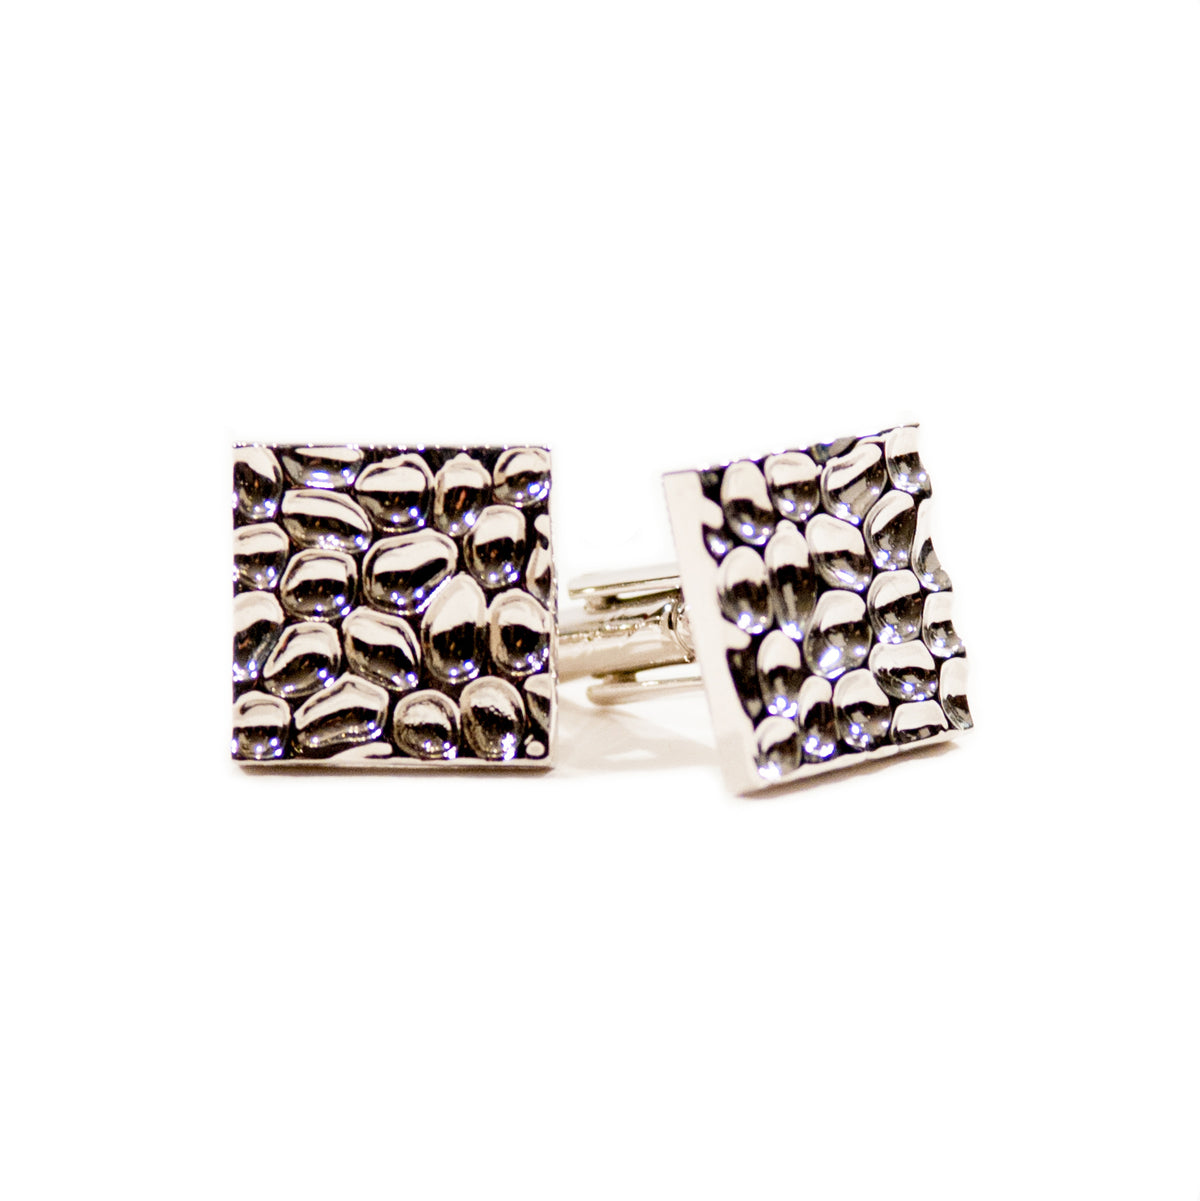 Textured Metal Alloy Square Cufflinks for Luxmrkt.com Menswear Consignment Edmonton